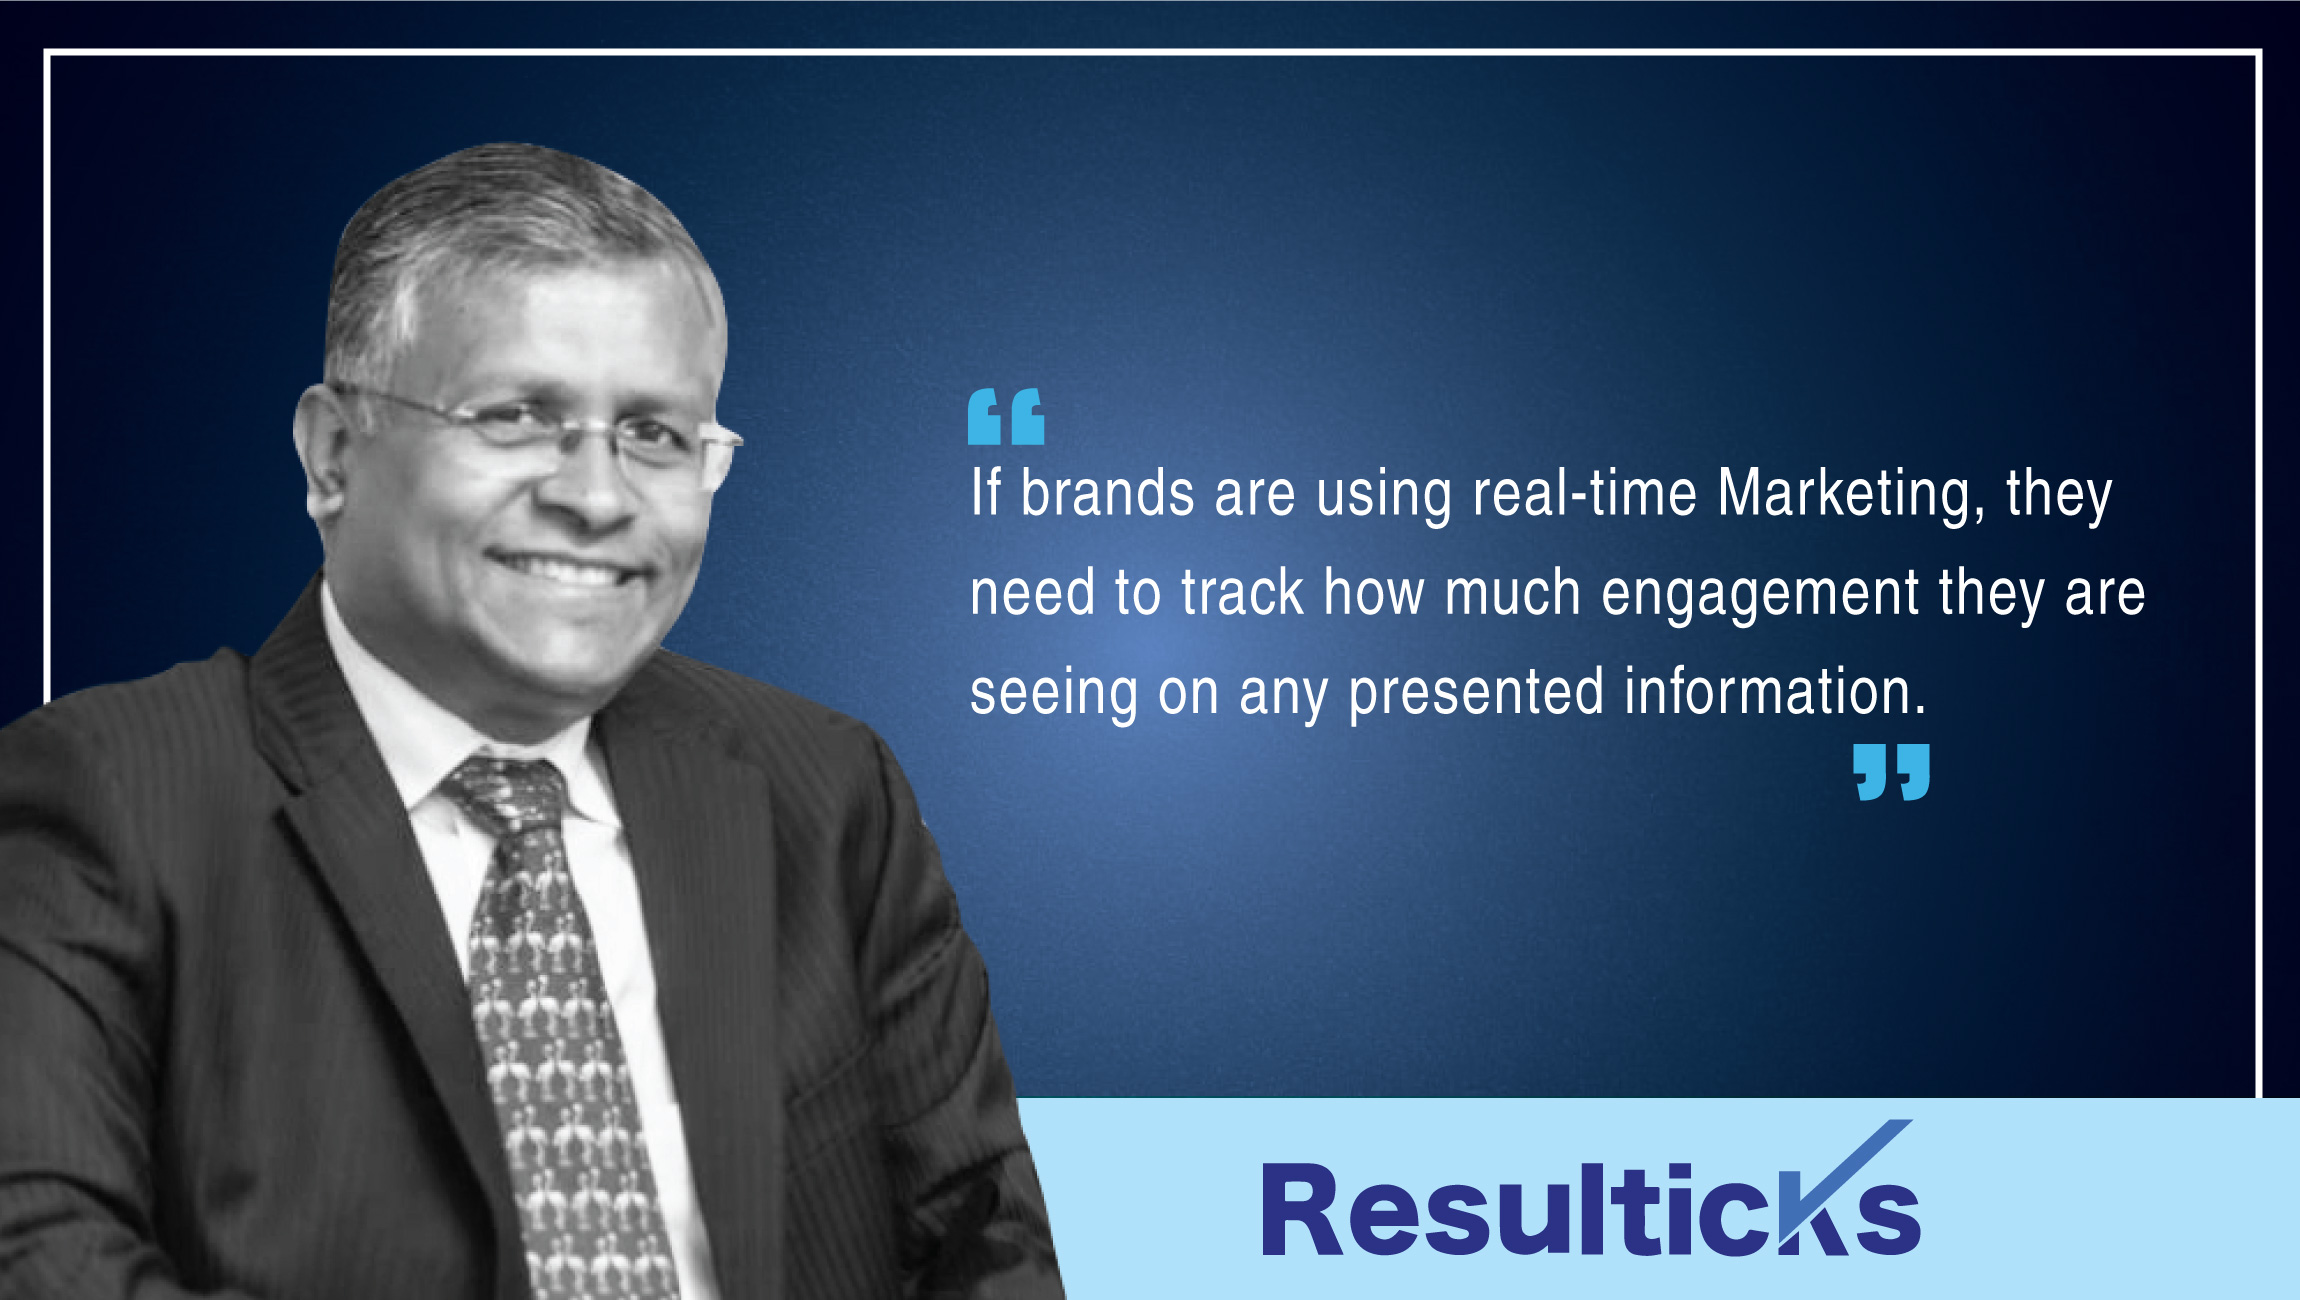 TechBytes with Mani Gopalaratnam, CTO at Resulticks